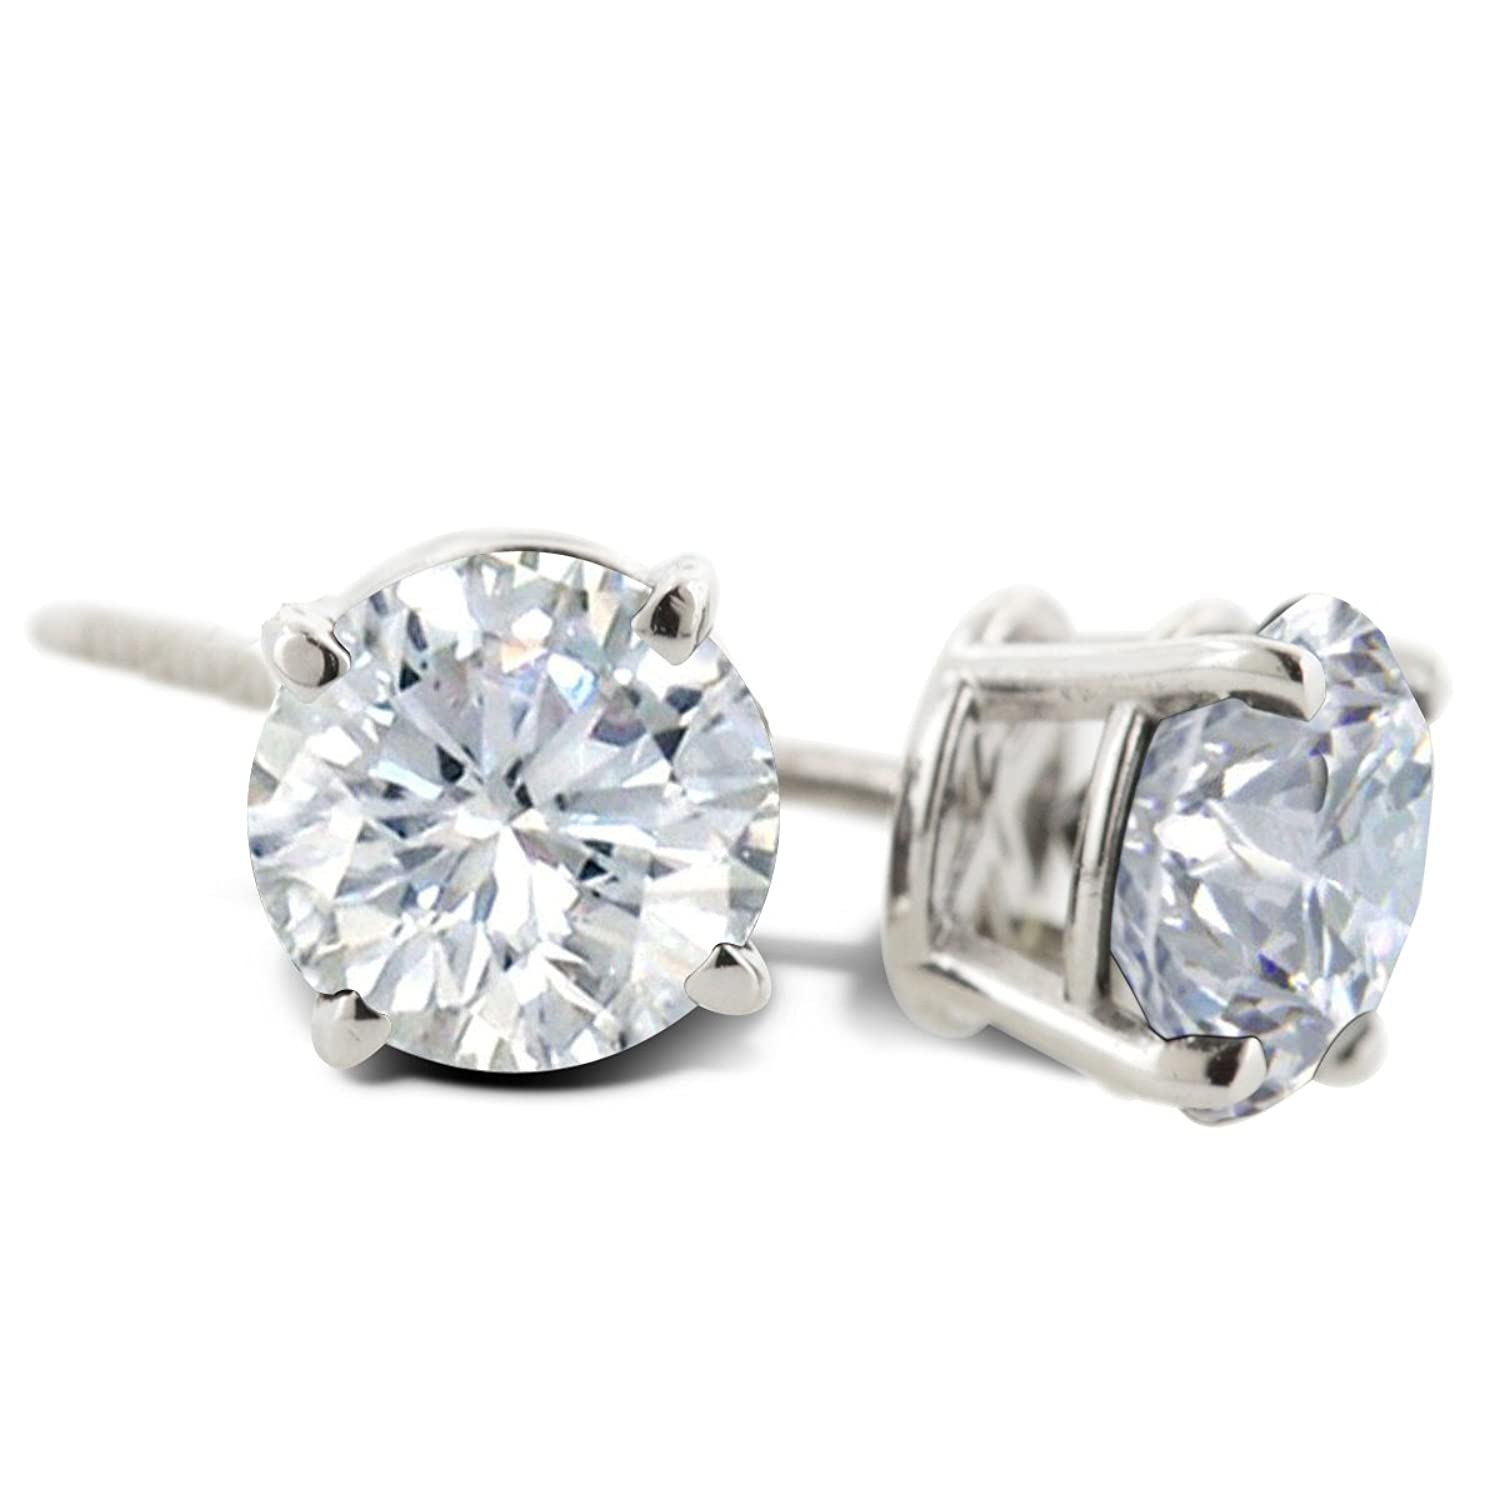 IGI Certified 14K White Gold Round Diamond Stud Earrings (1cttw) with Screw Backs